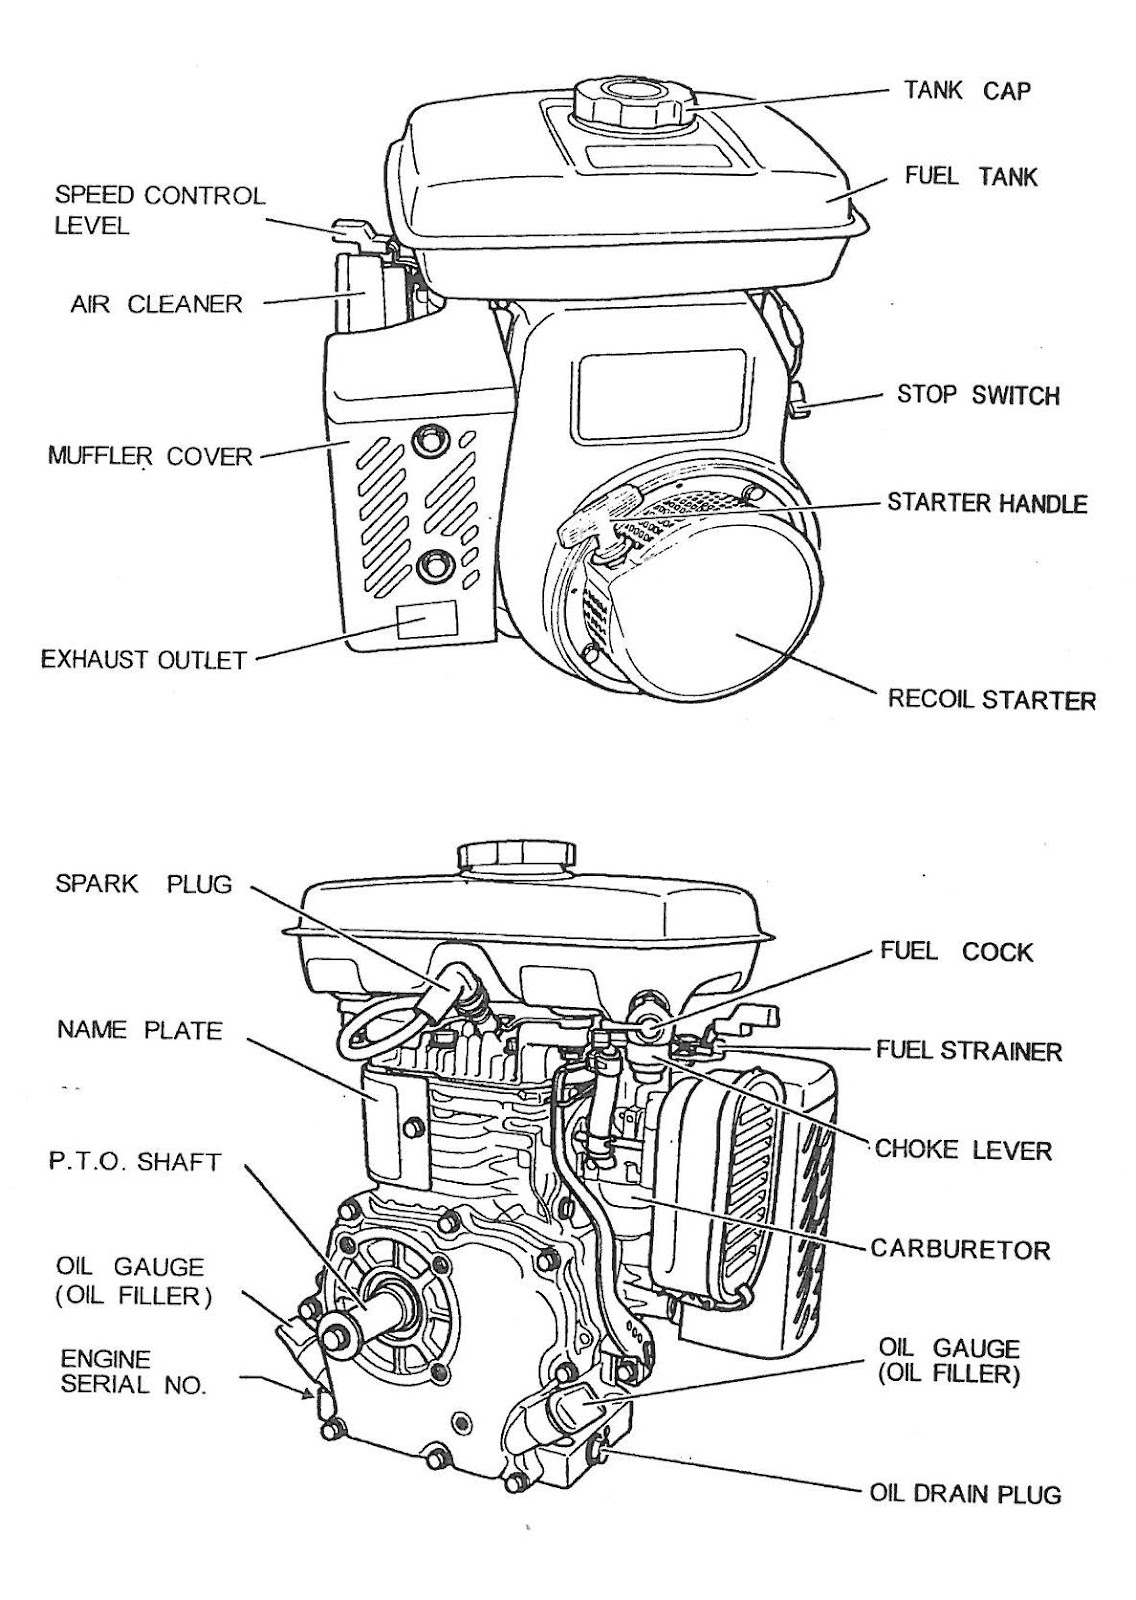 D465bs1 Wisconsin Engine Wiring Diagram. . Wiring Diagram on